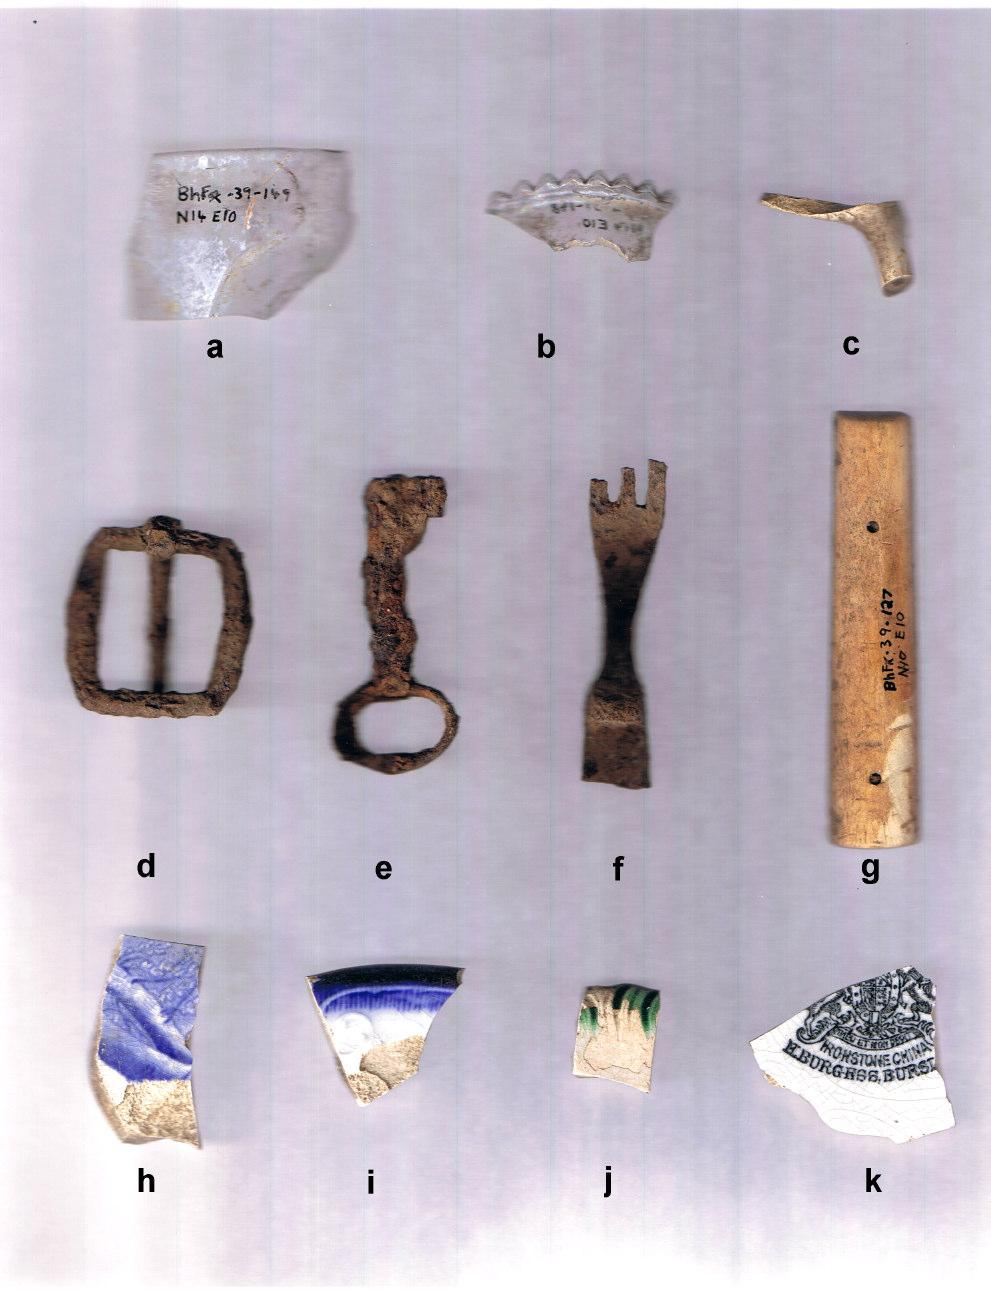 Plate 10: Representative Stage 3 Artifacts from Gourley Site (BhFx-39) a, glass tumbler rim fragment, BhFx-39-149, N14E10 b, clear glass crenellated lantern rim, BhFx-39-148, N14 E10 c, clay pipe